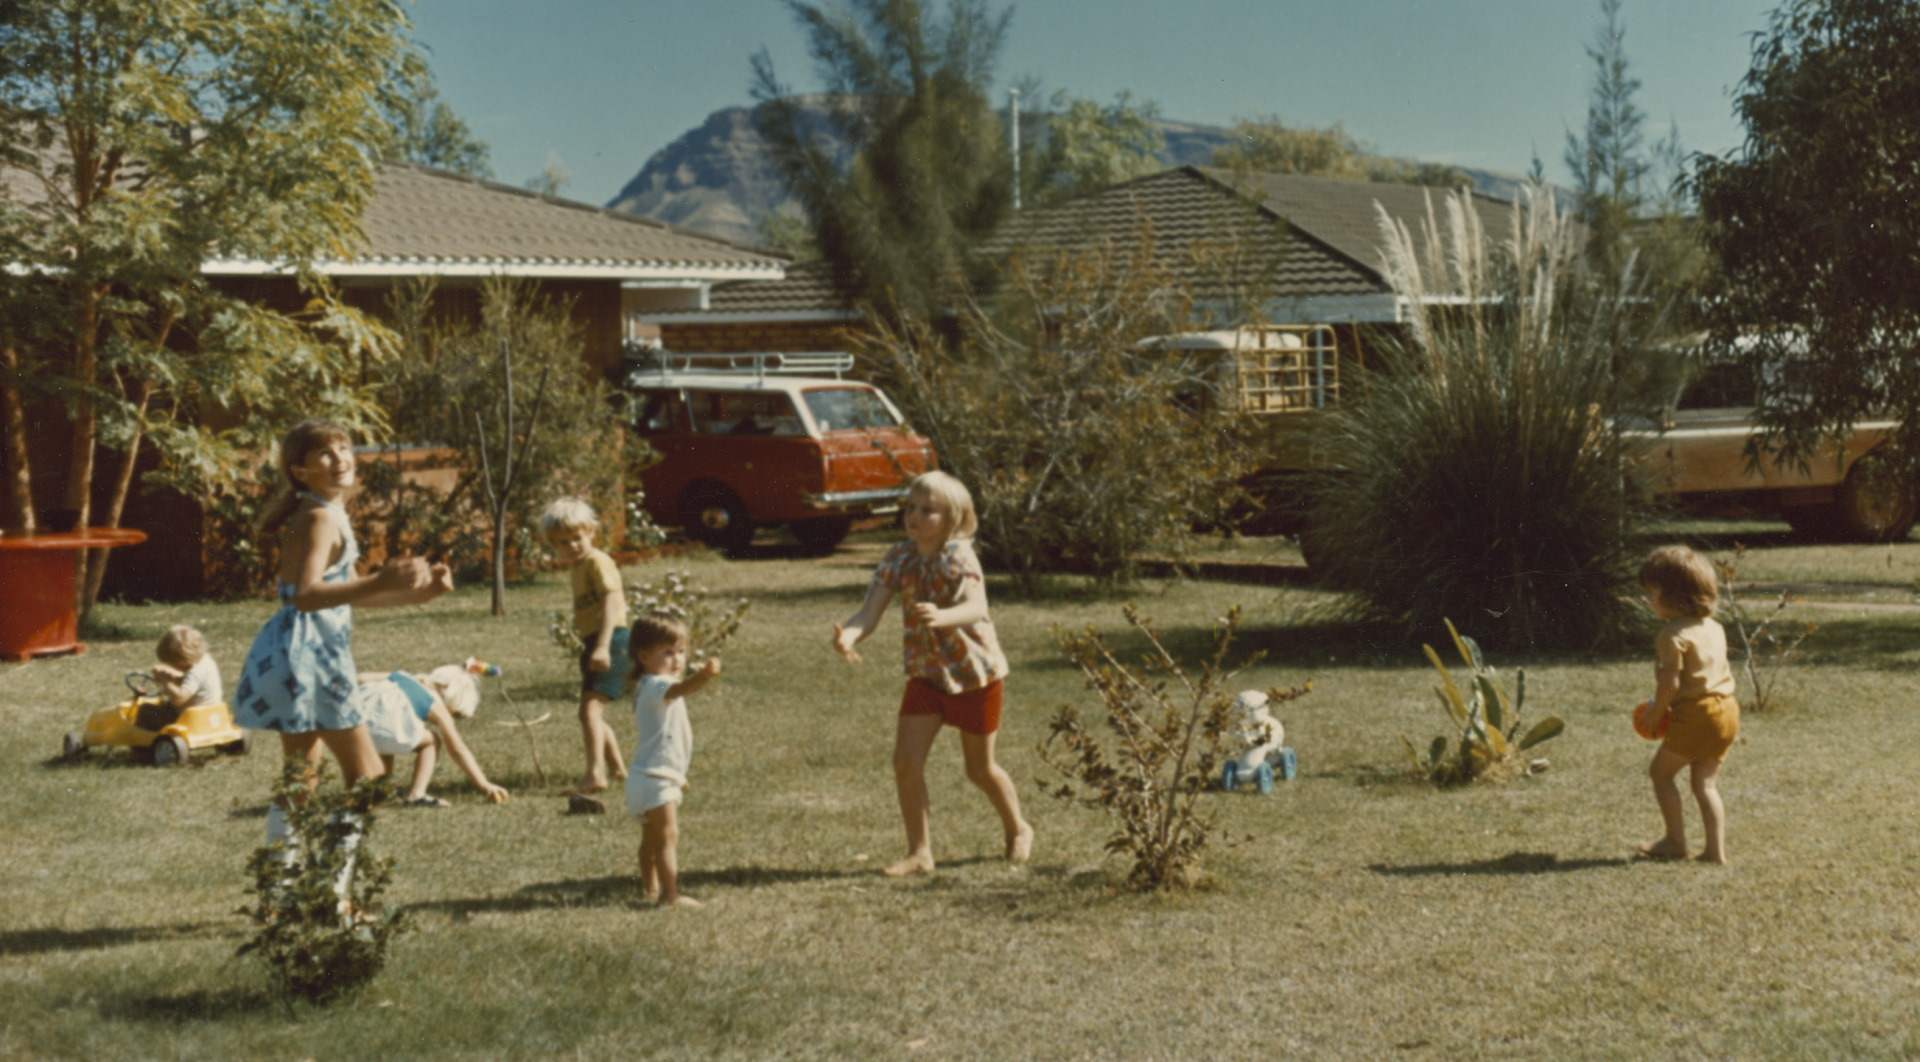 A group of children playing in a yard